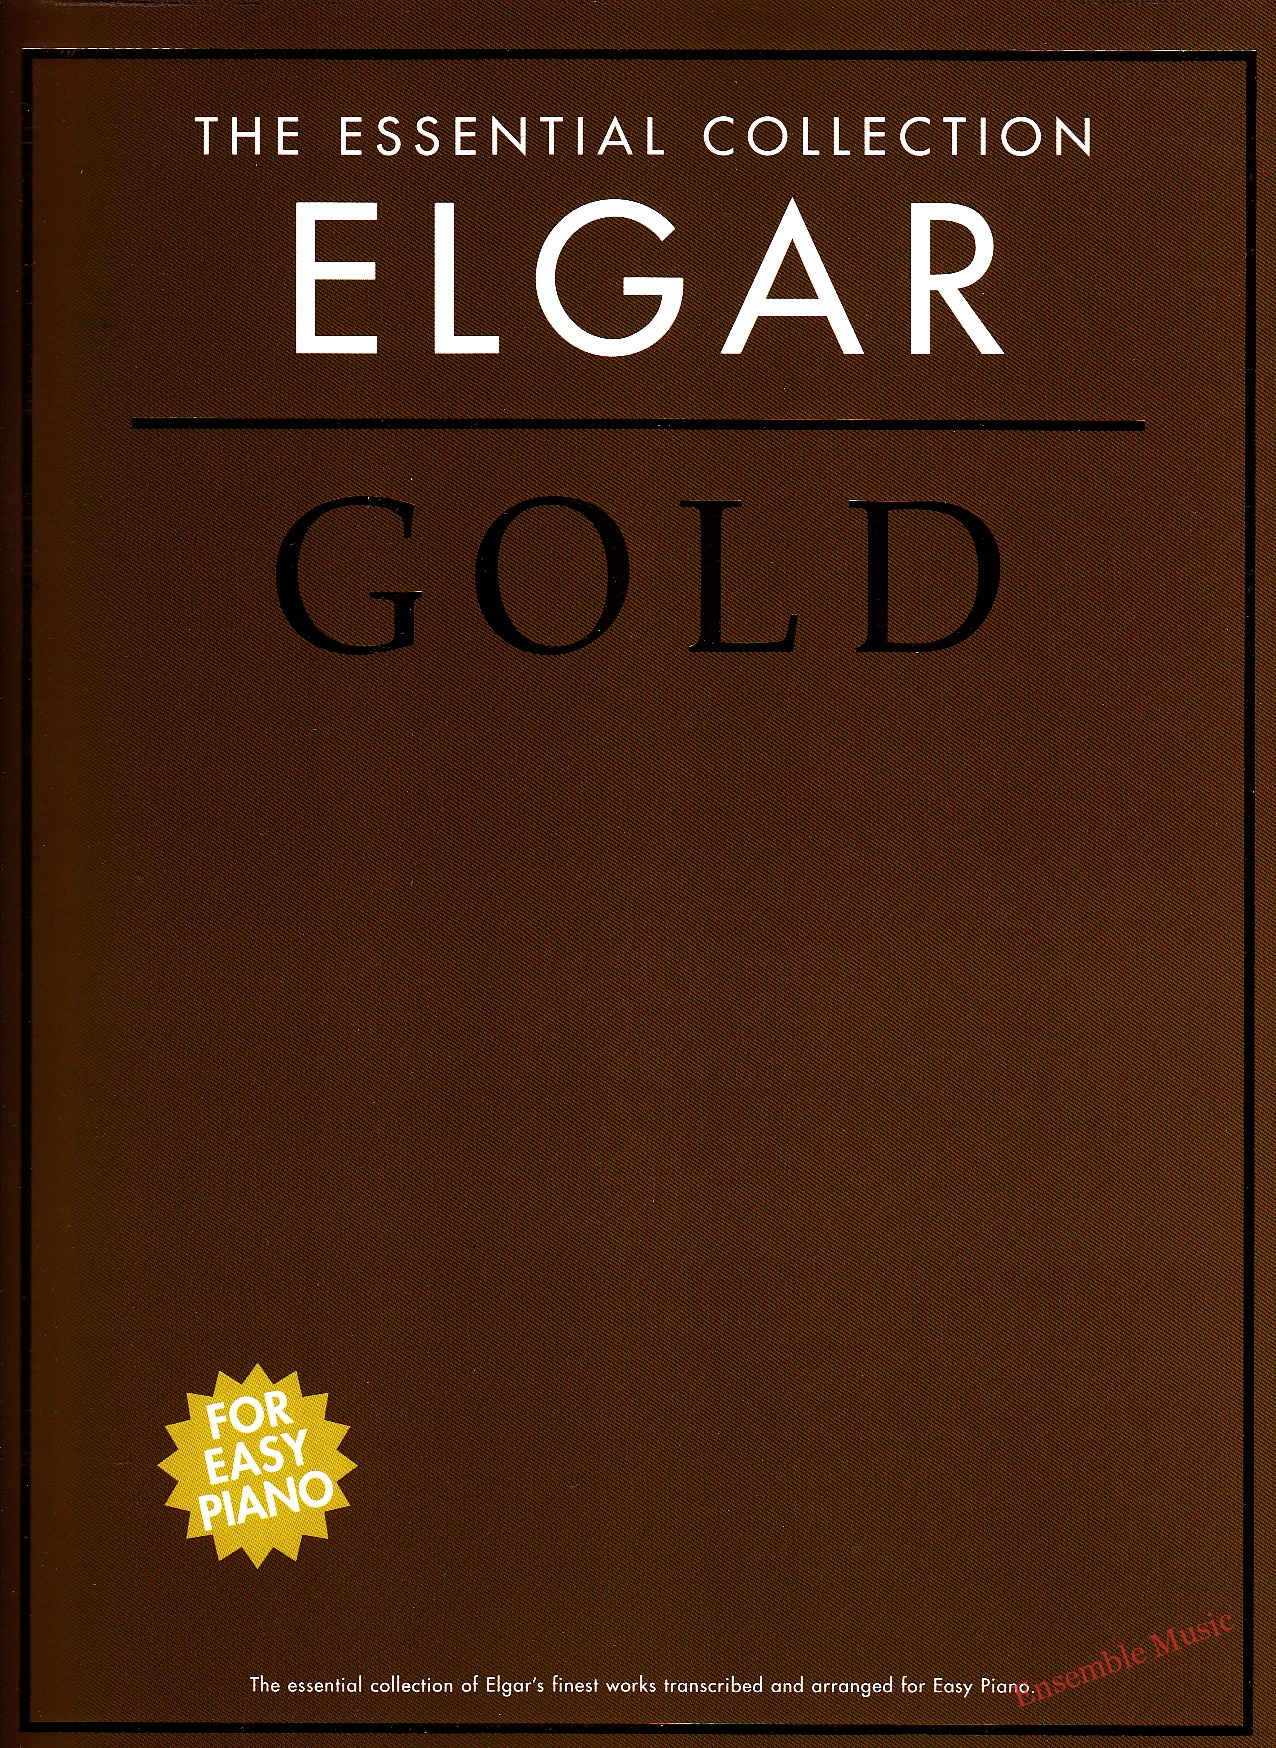 The Essential Collection Elgar Gold